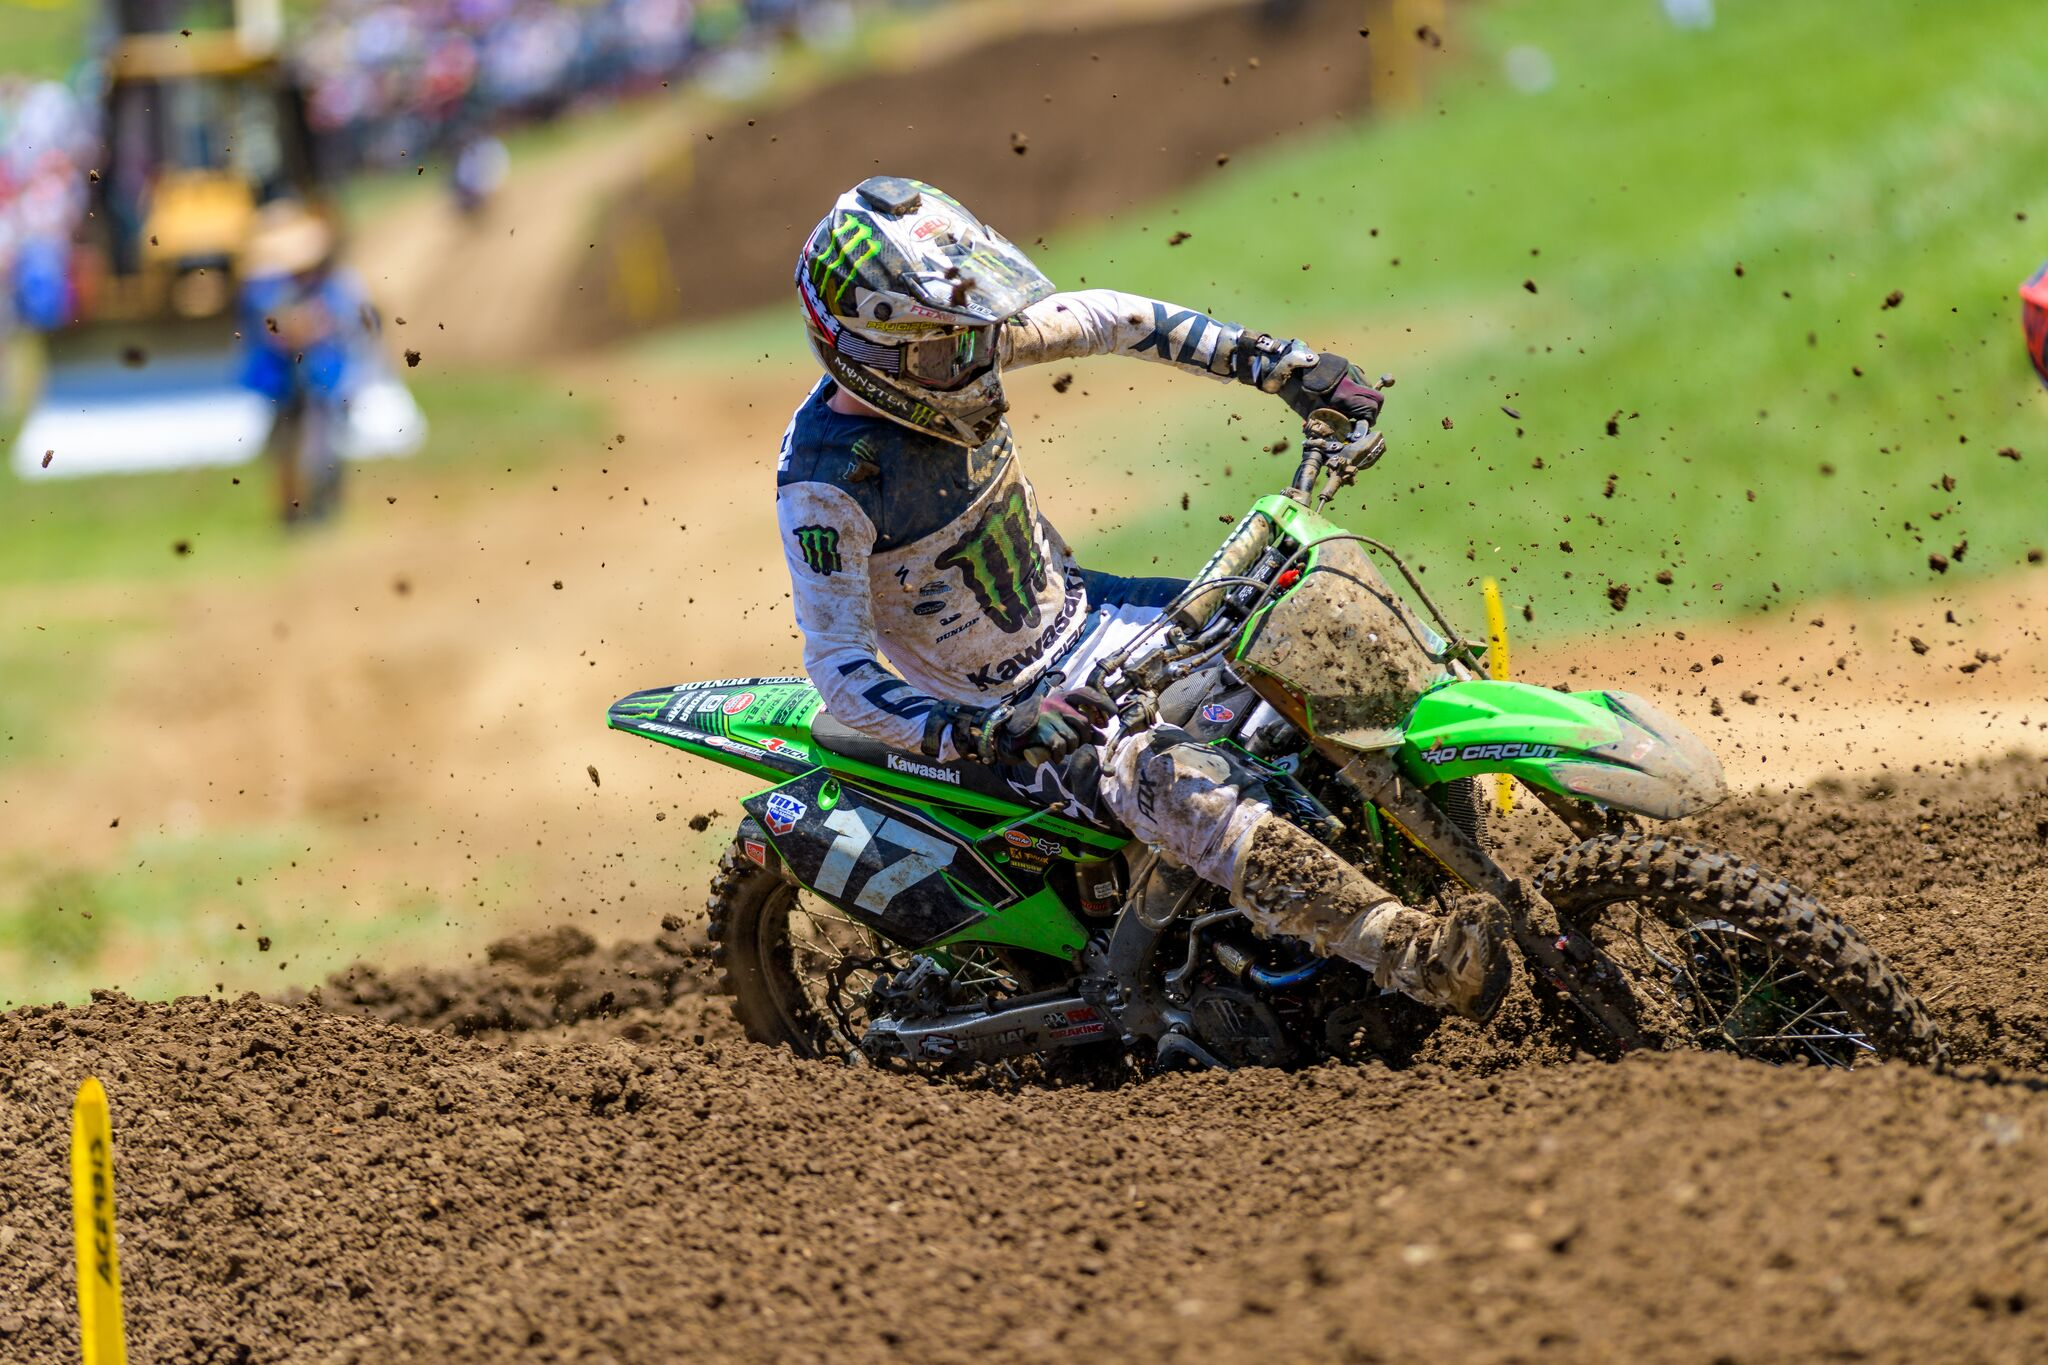 Monster Energy Pro Circuit Kawasaki Finish Inside The Top 10 in Tennessee